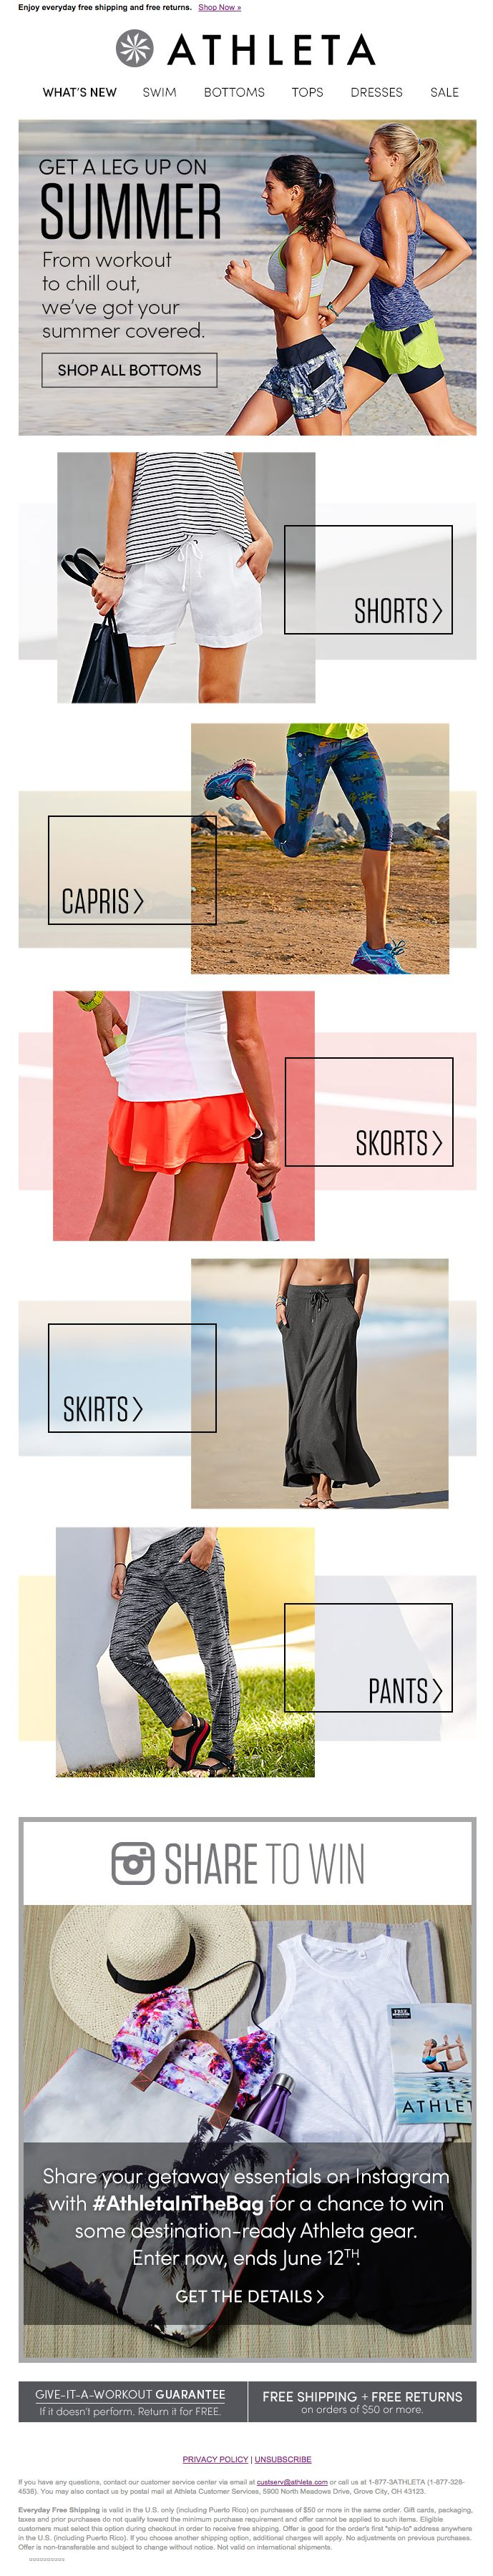 Athleta Email